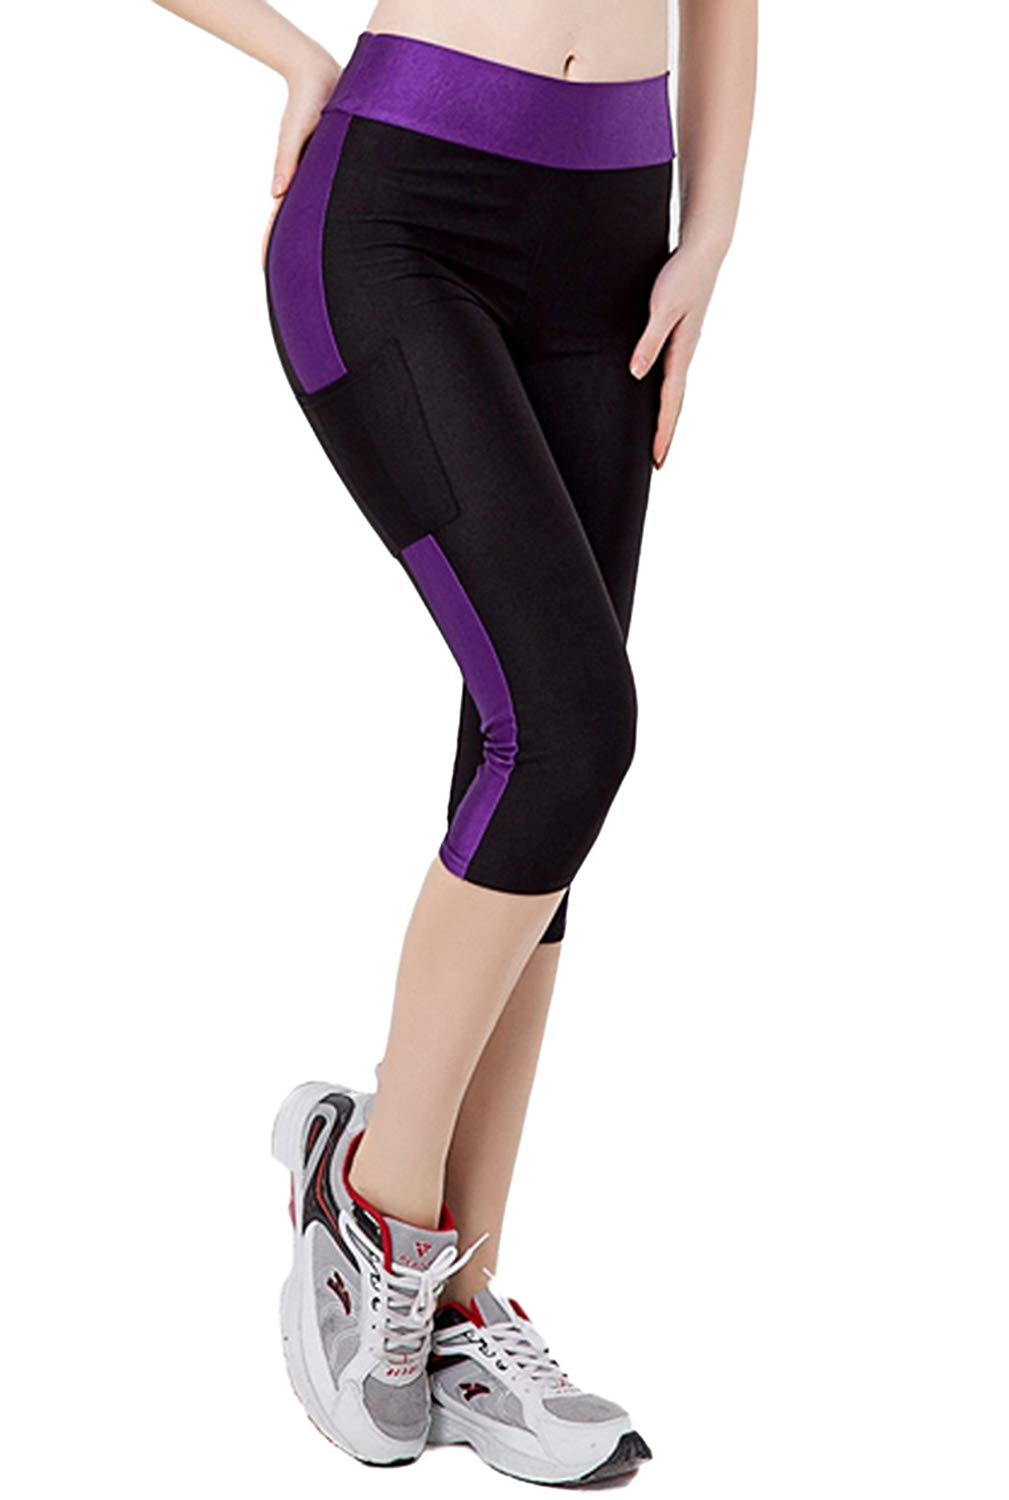 98a0e7618824bc Get Quotations · AKENA Women Sports Running Stretch Leggings Slim Fitness  with Pockets Tights Skinny Spandex Workout Capri Yoga